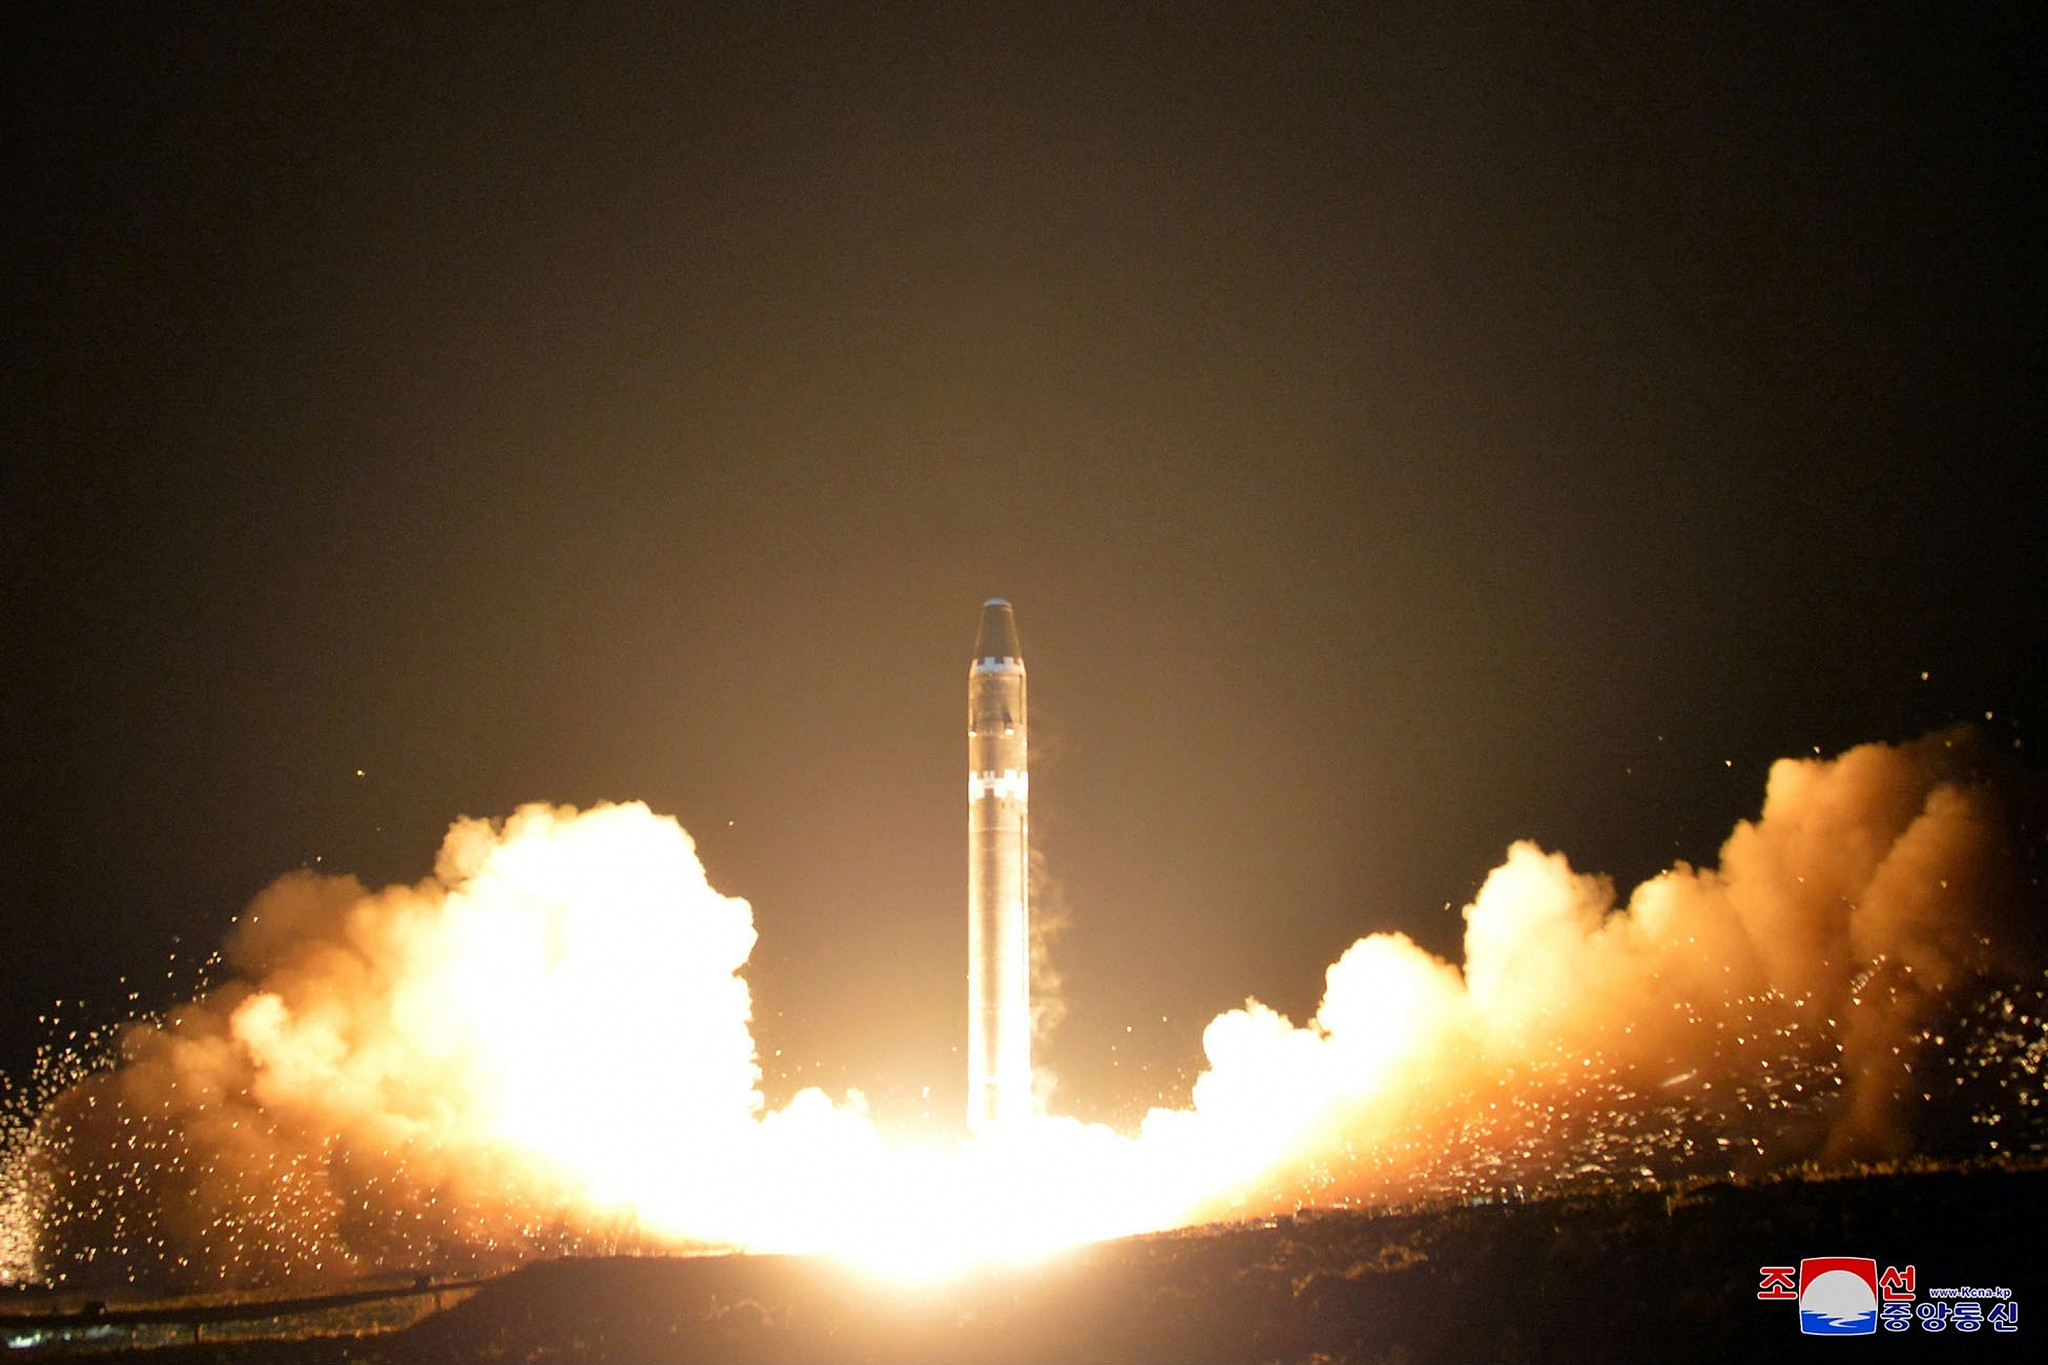 North Korea: Building Missiles Armed with Anthrax That Can Hit America?